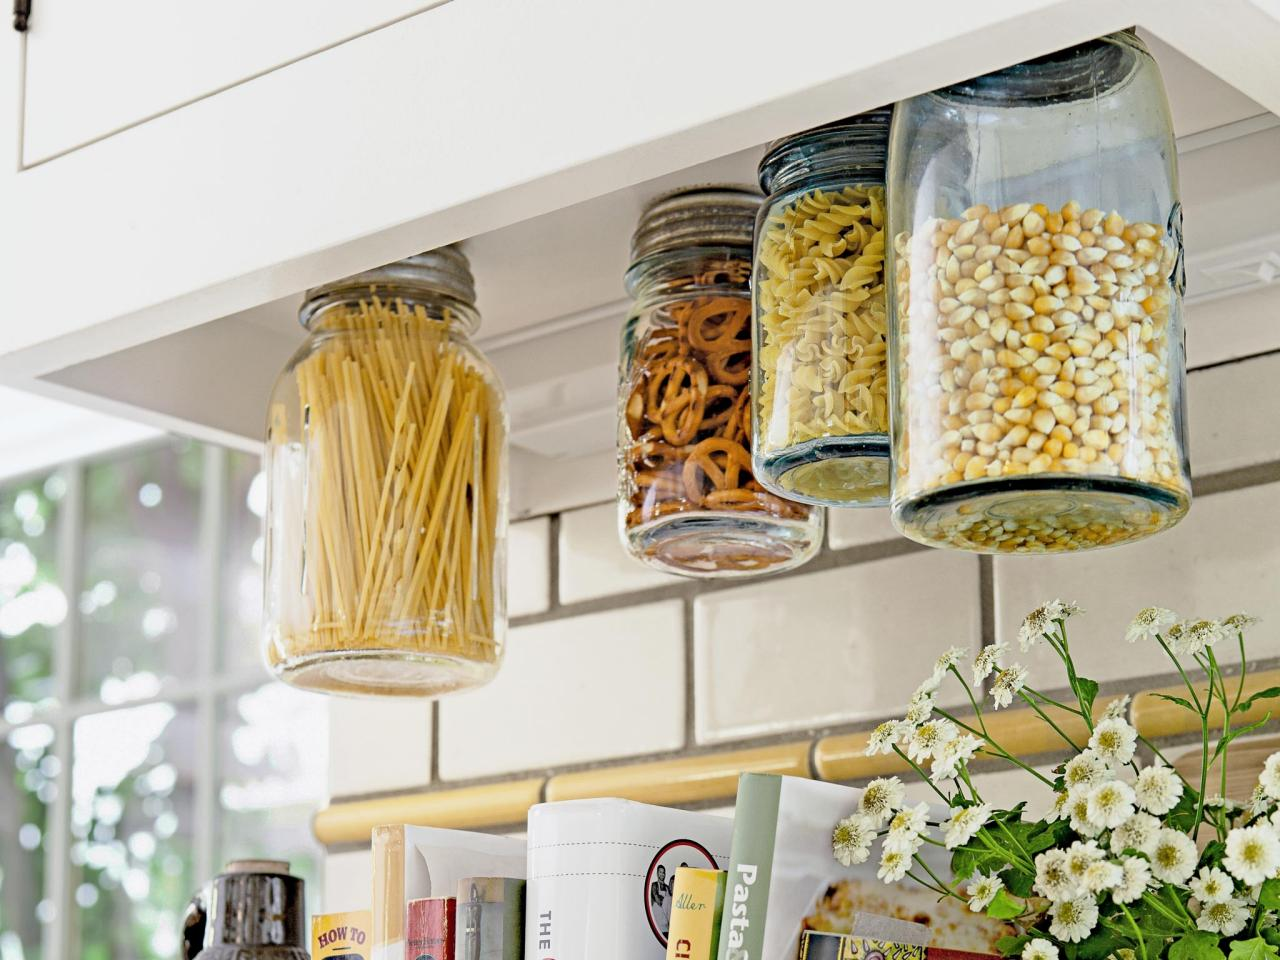 1. Mason Jar Food Storage